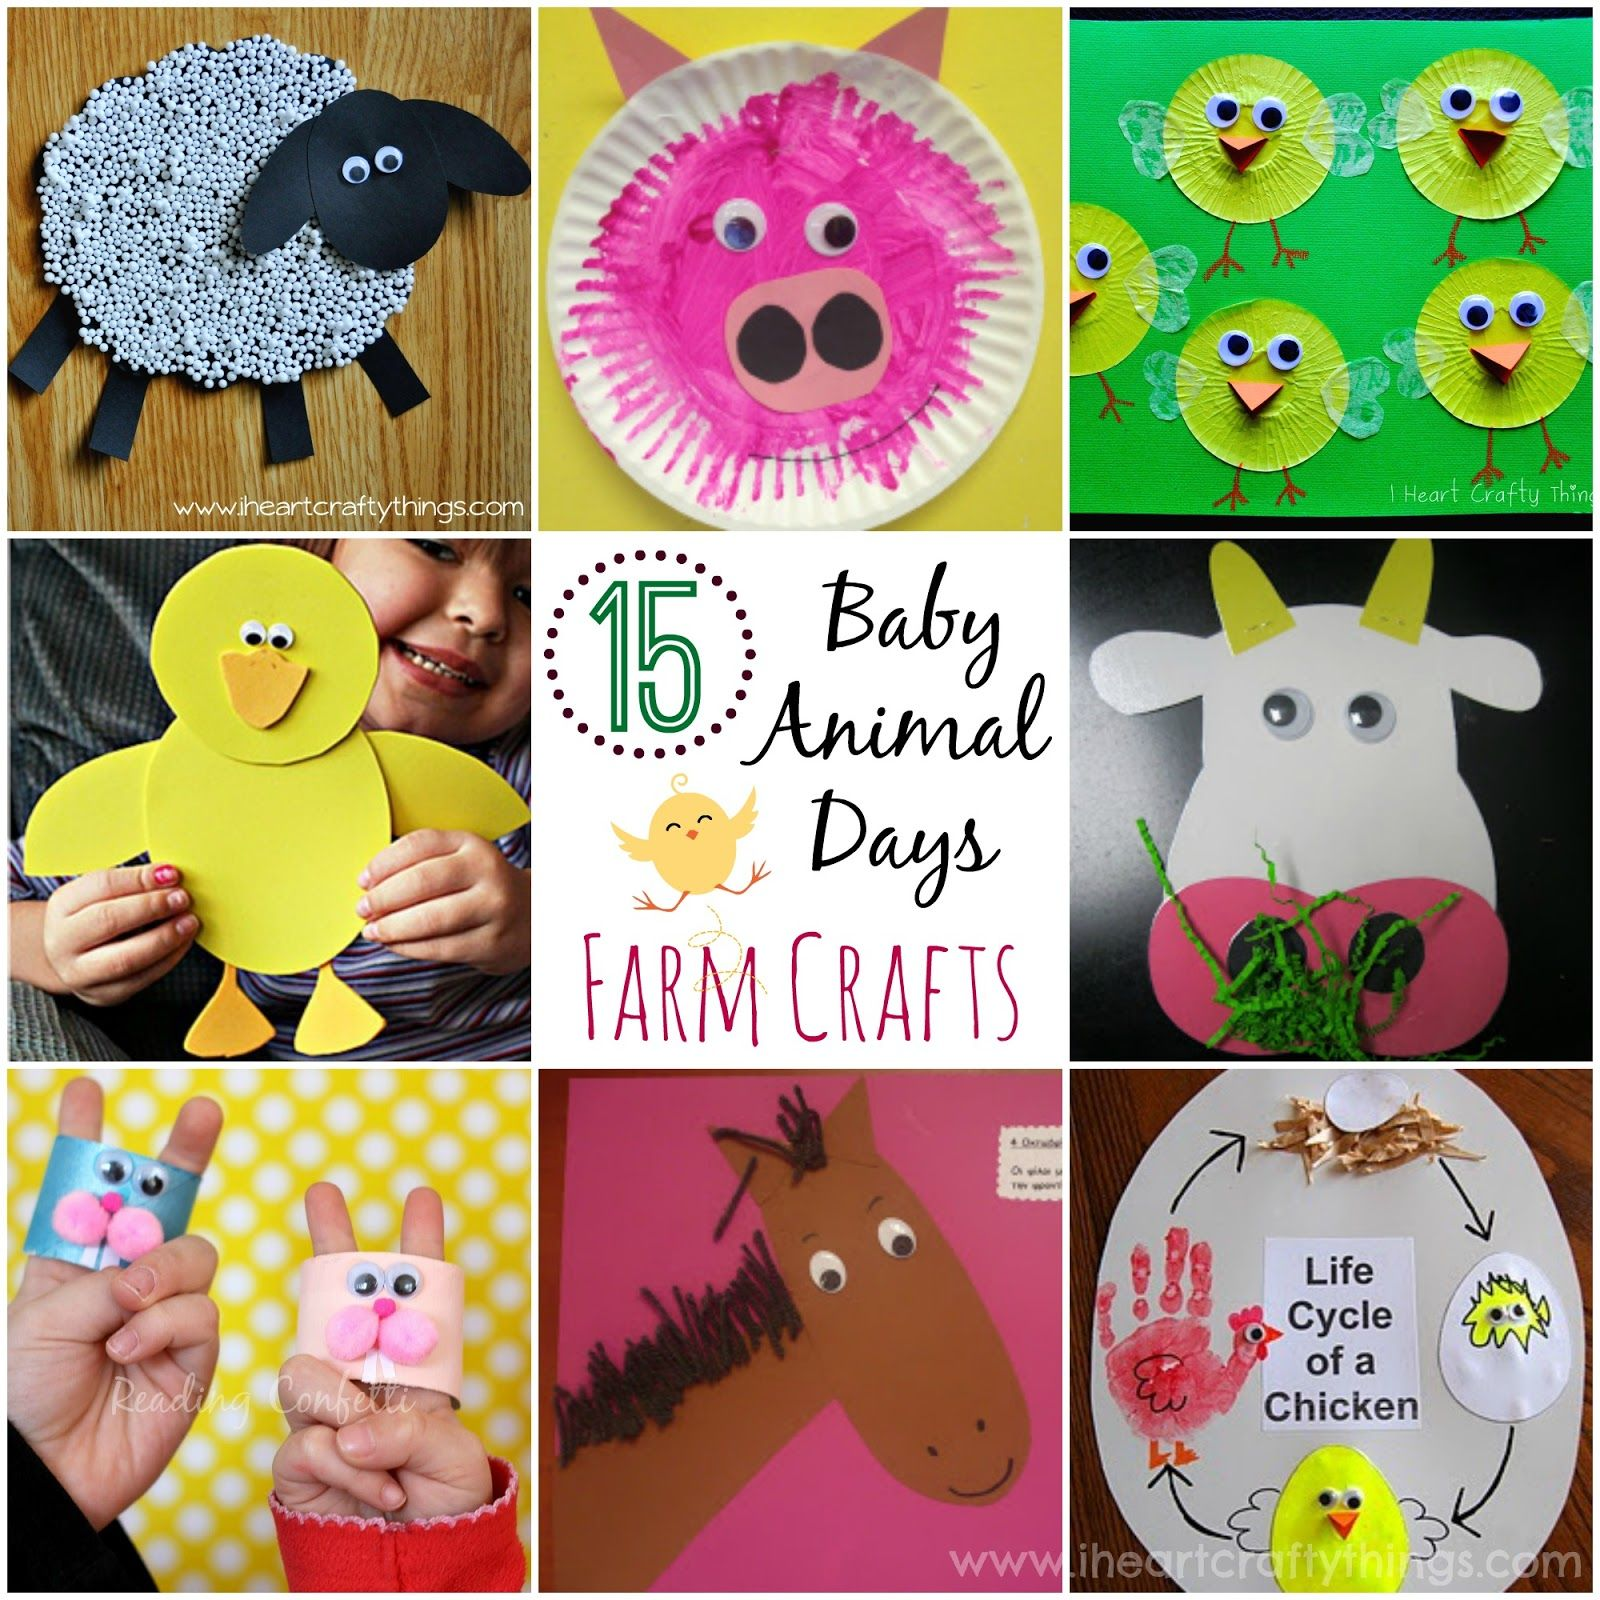 15 Baby Animal Days Farm Crafts For Kids With Images